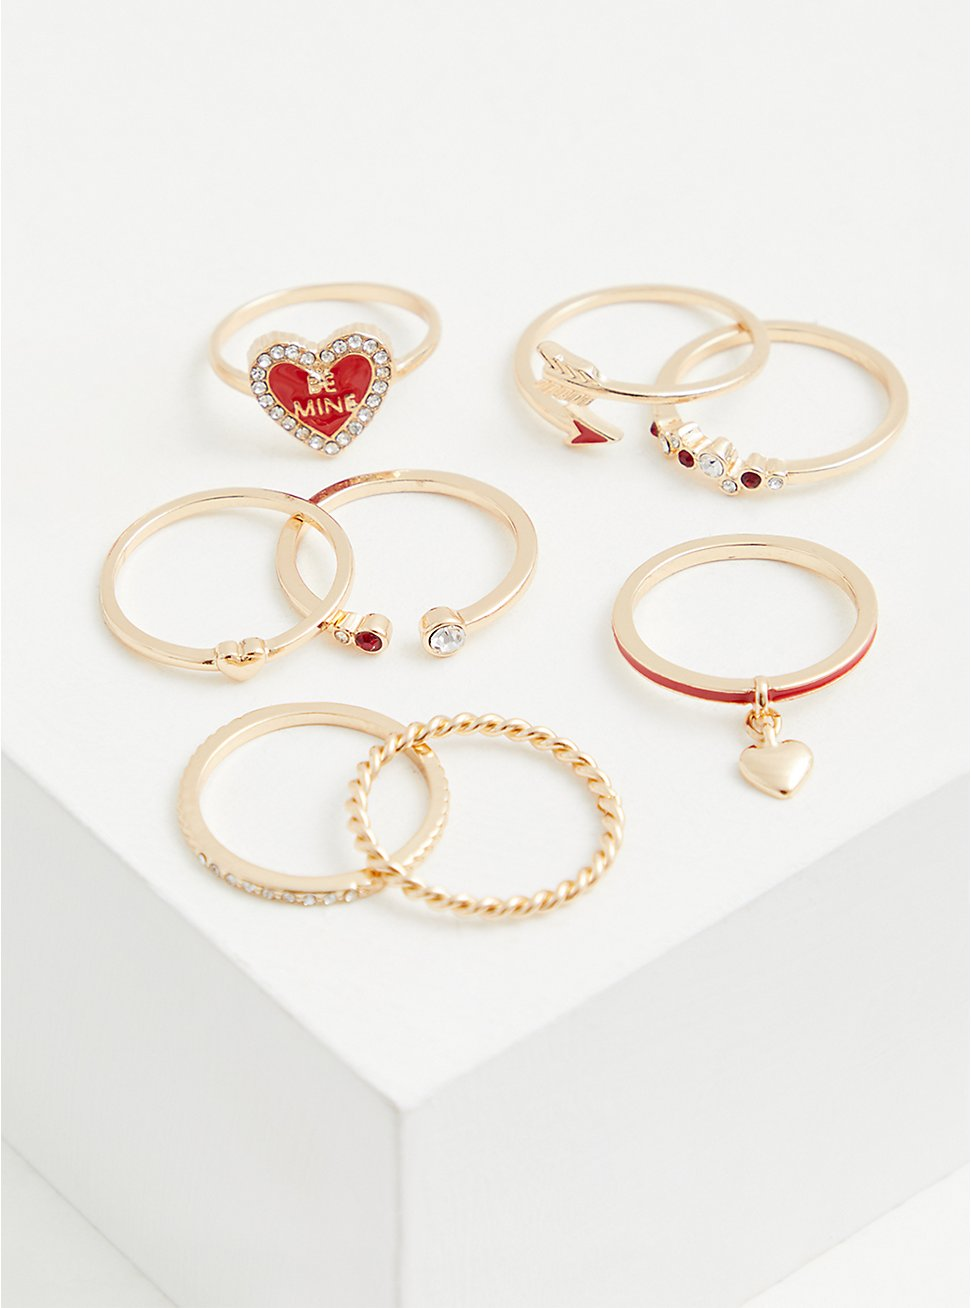 Gold-Tone & Red Heart Be Mine Ring Set - Set Of 8, RED, hi-res